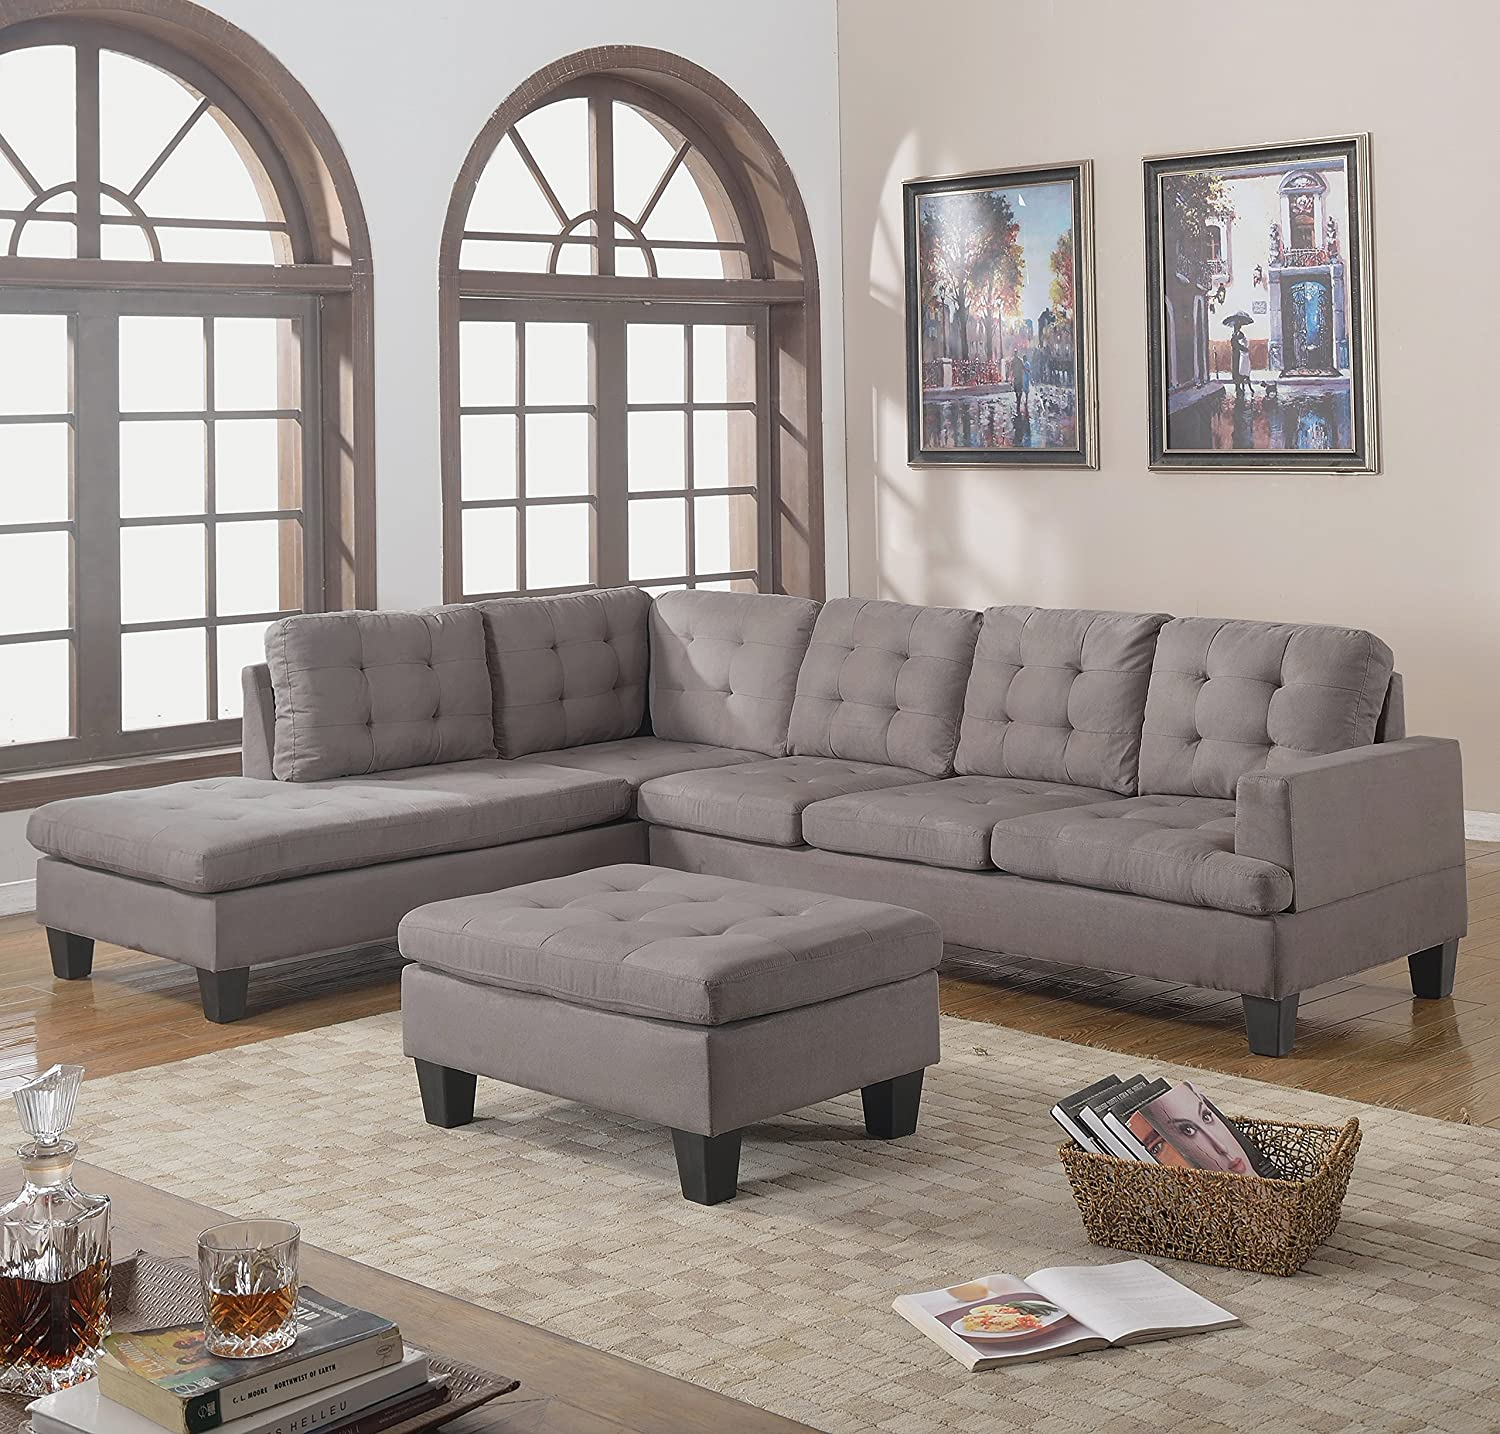 divano roma furniture piece reversible chaise sectional sofa withottoman grey charcoal amazonca home  kitchen. divano roma furniture piece reversible chaise sectional sofa